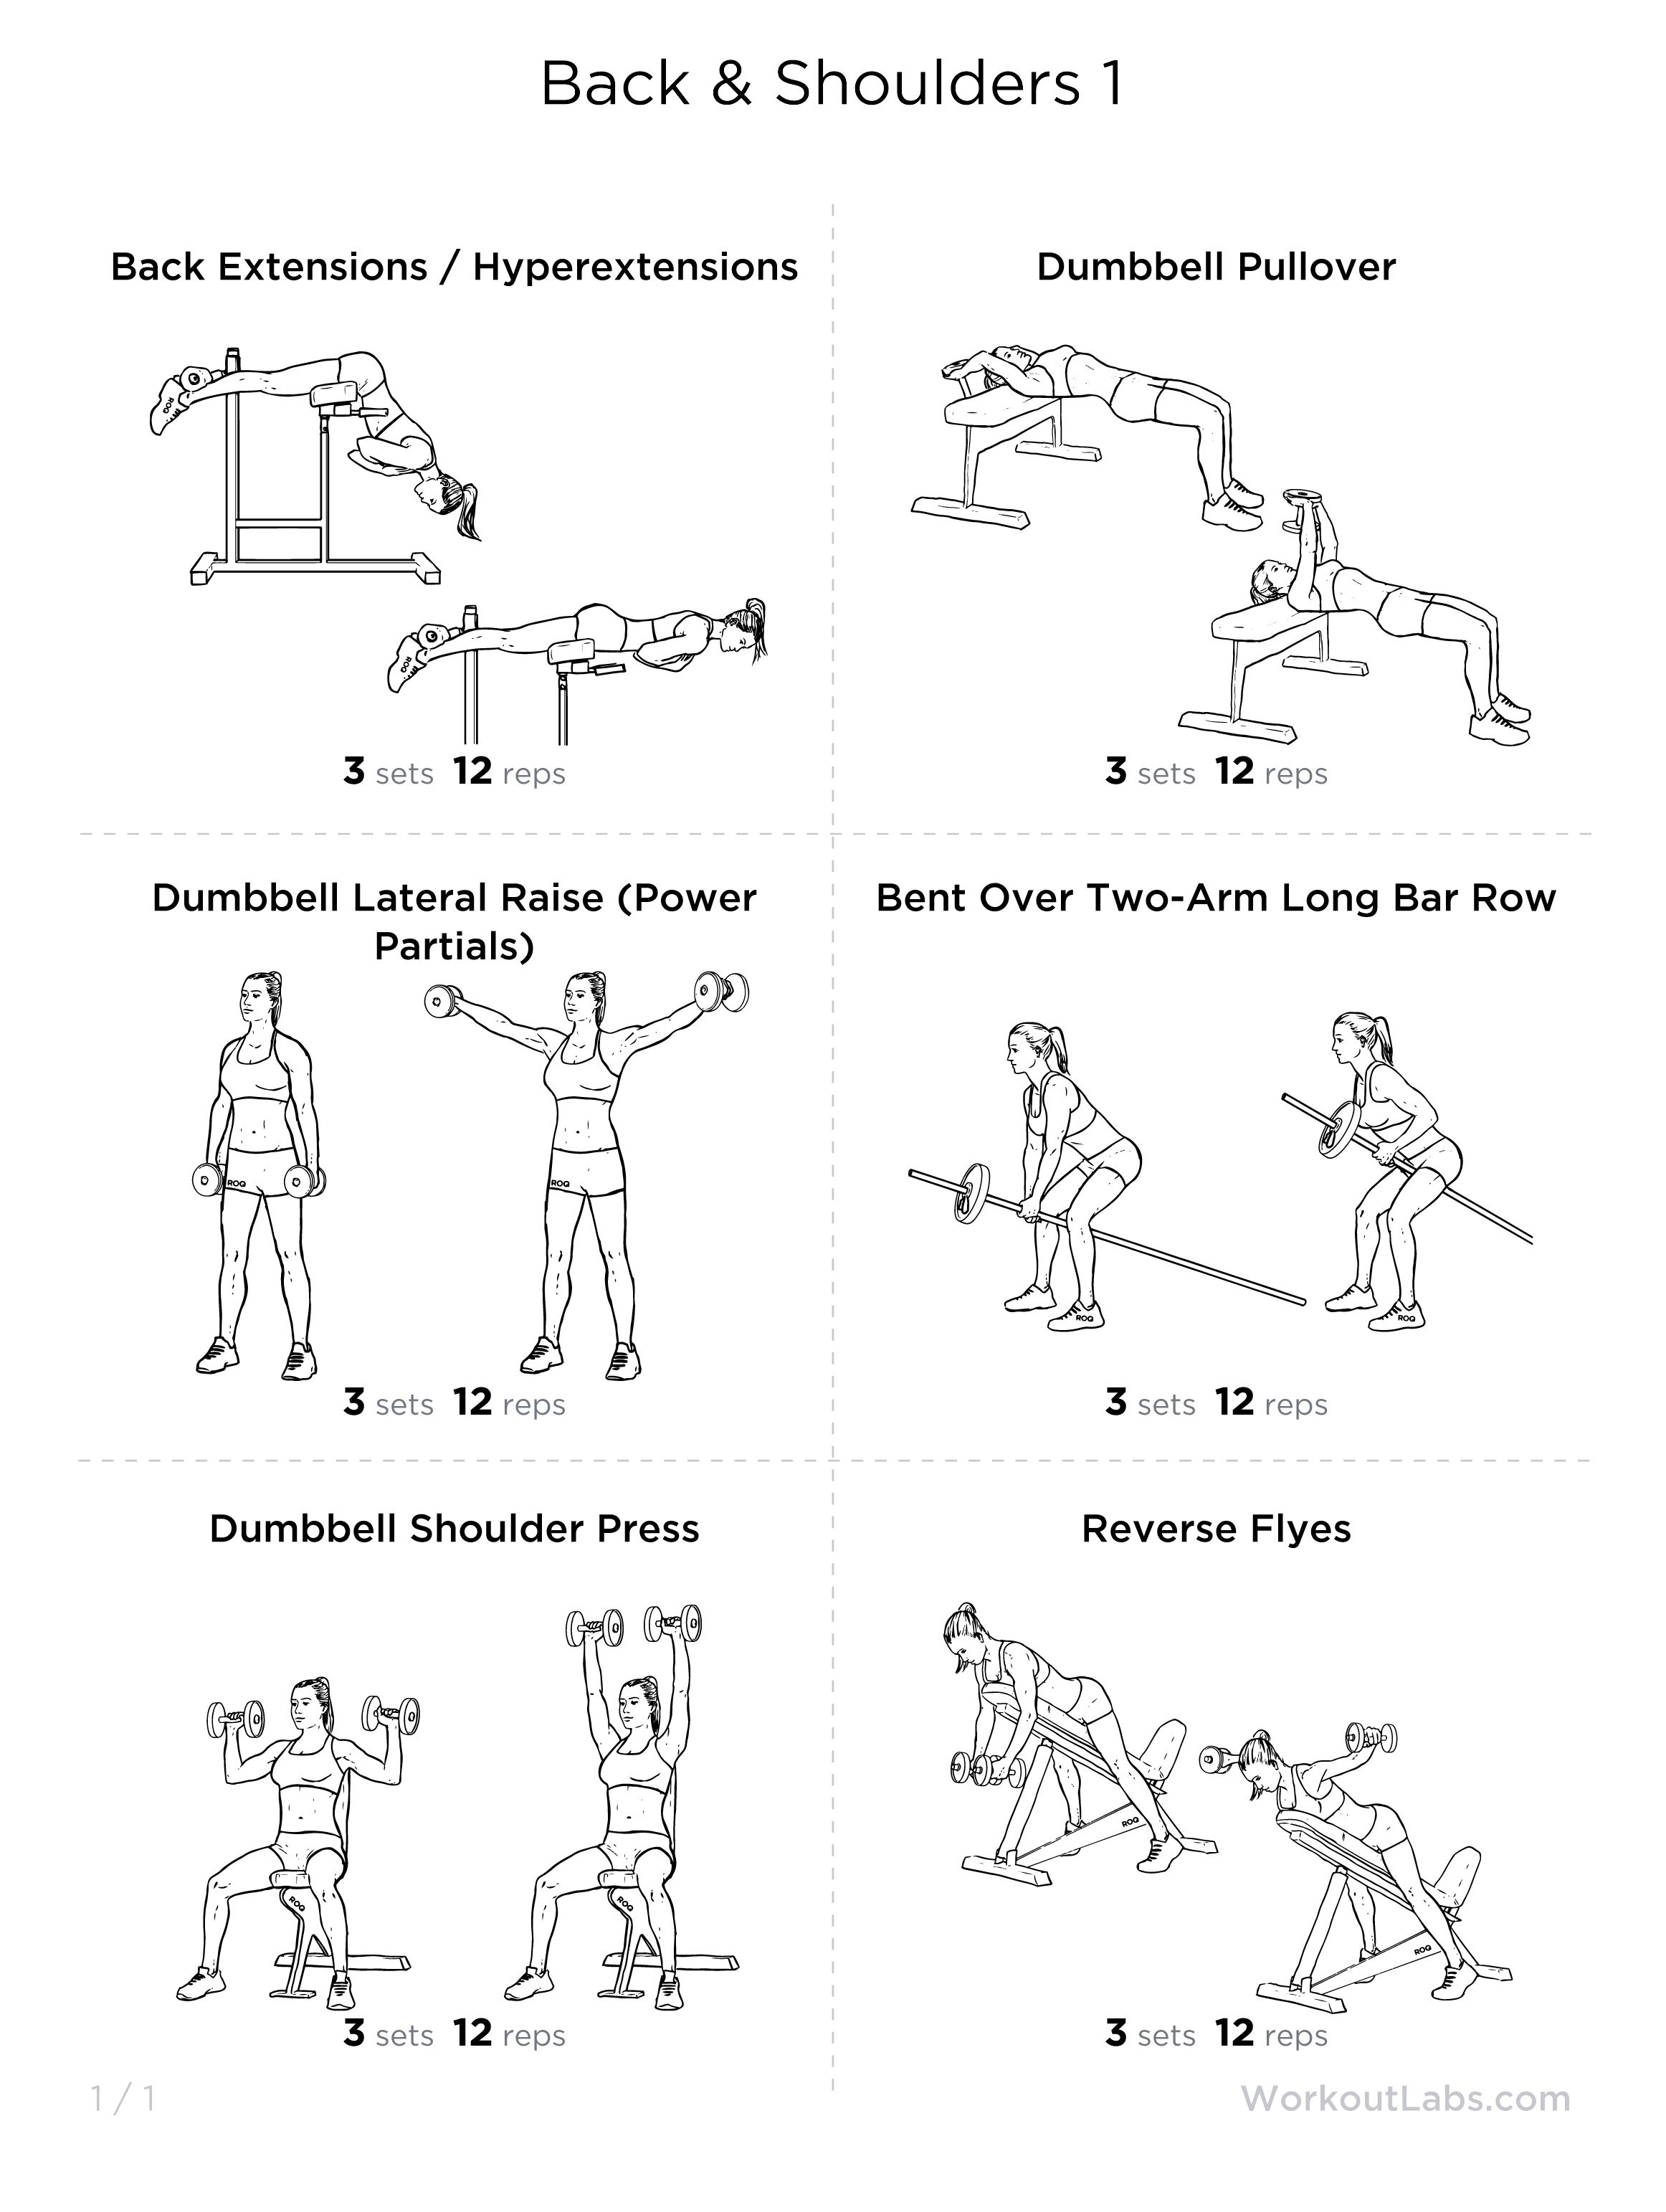 Obsessed with working out my back and shoulders... Need to try this ...